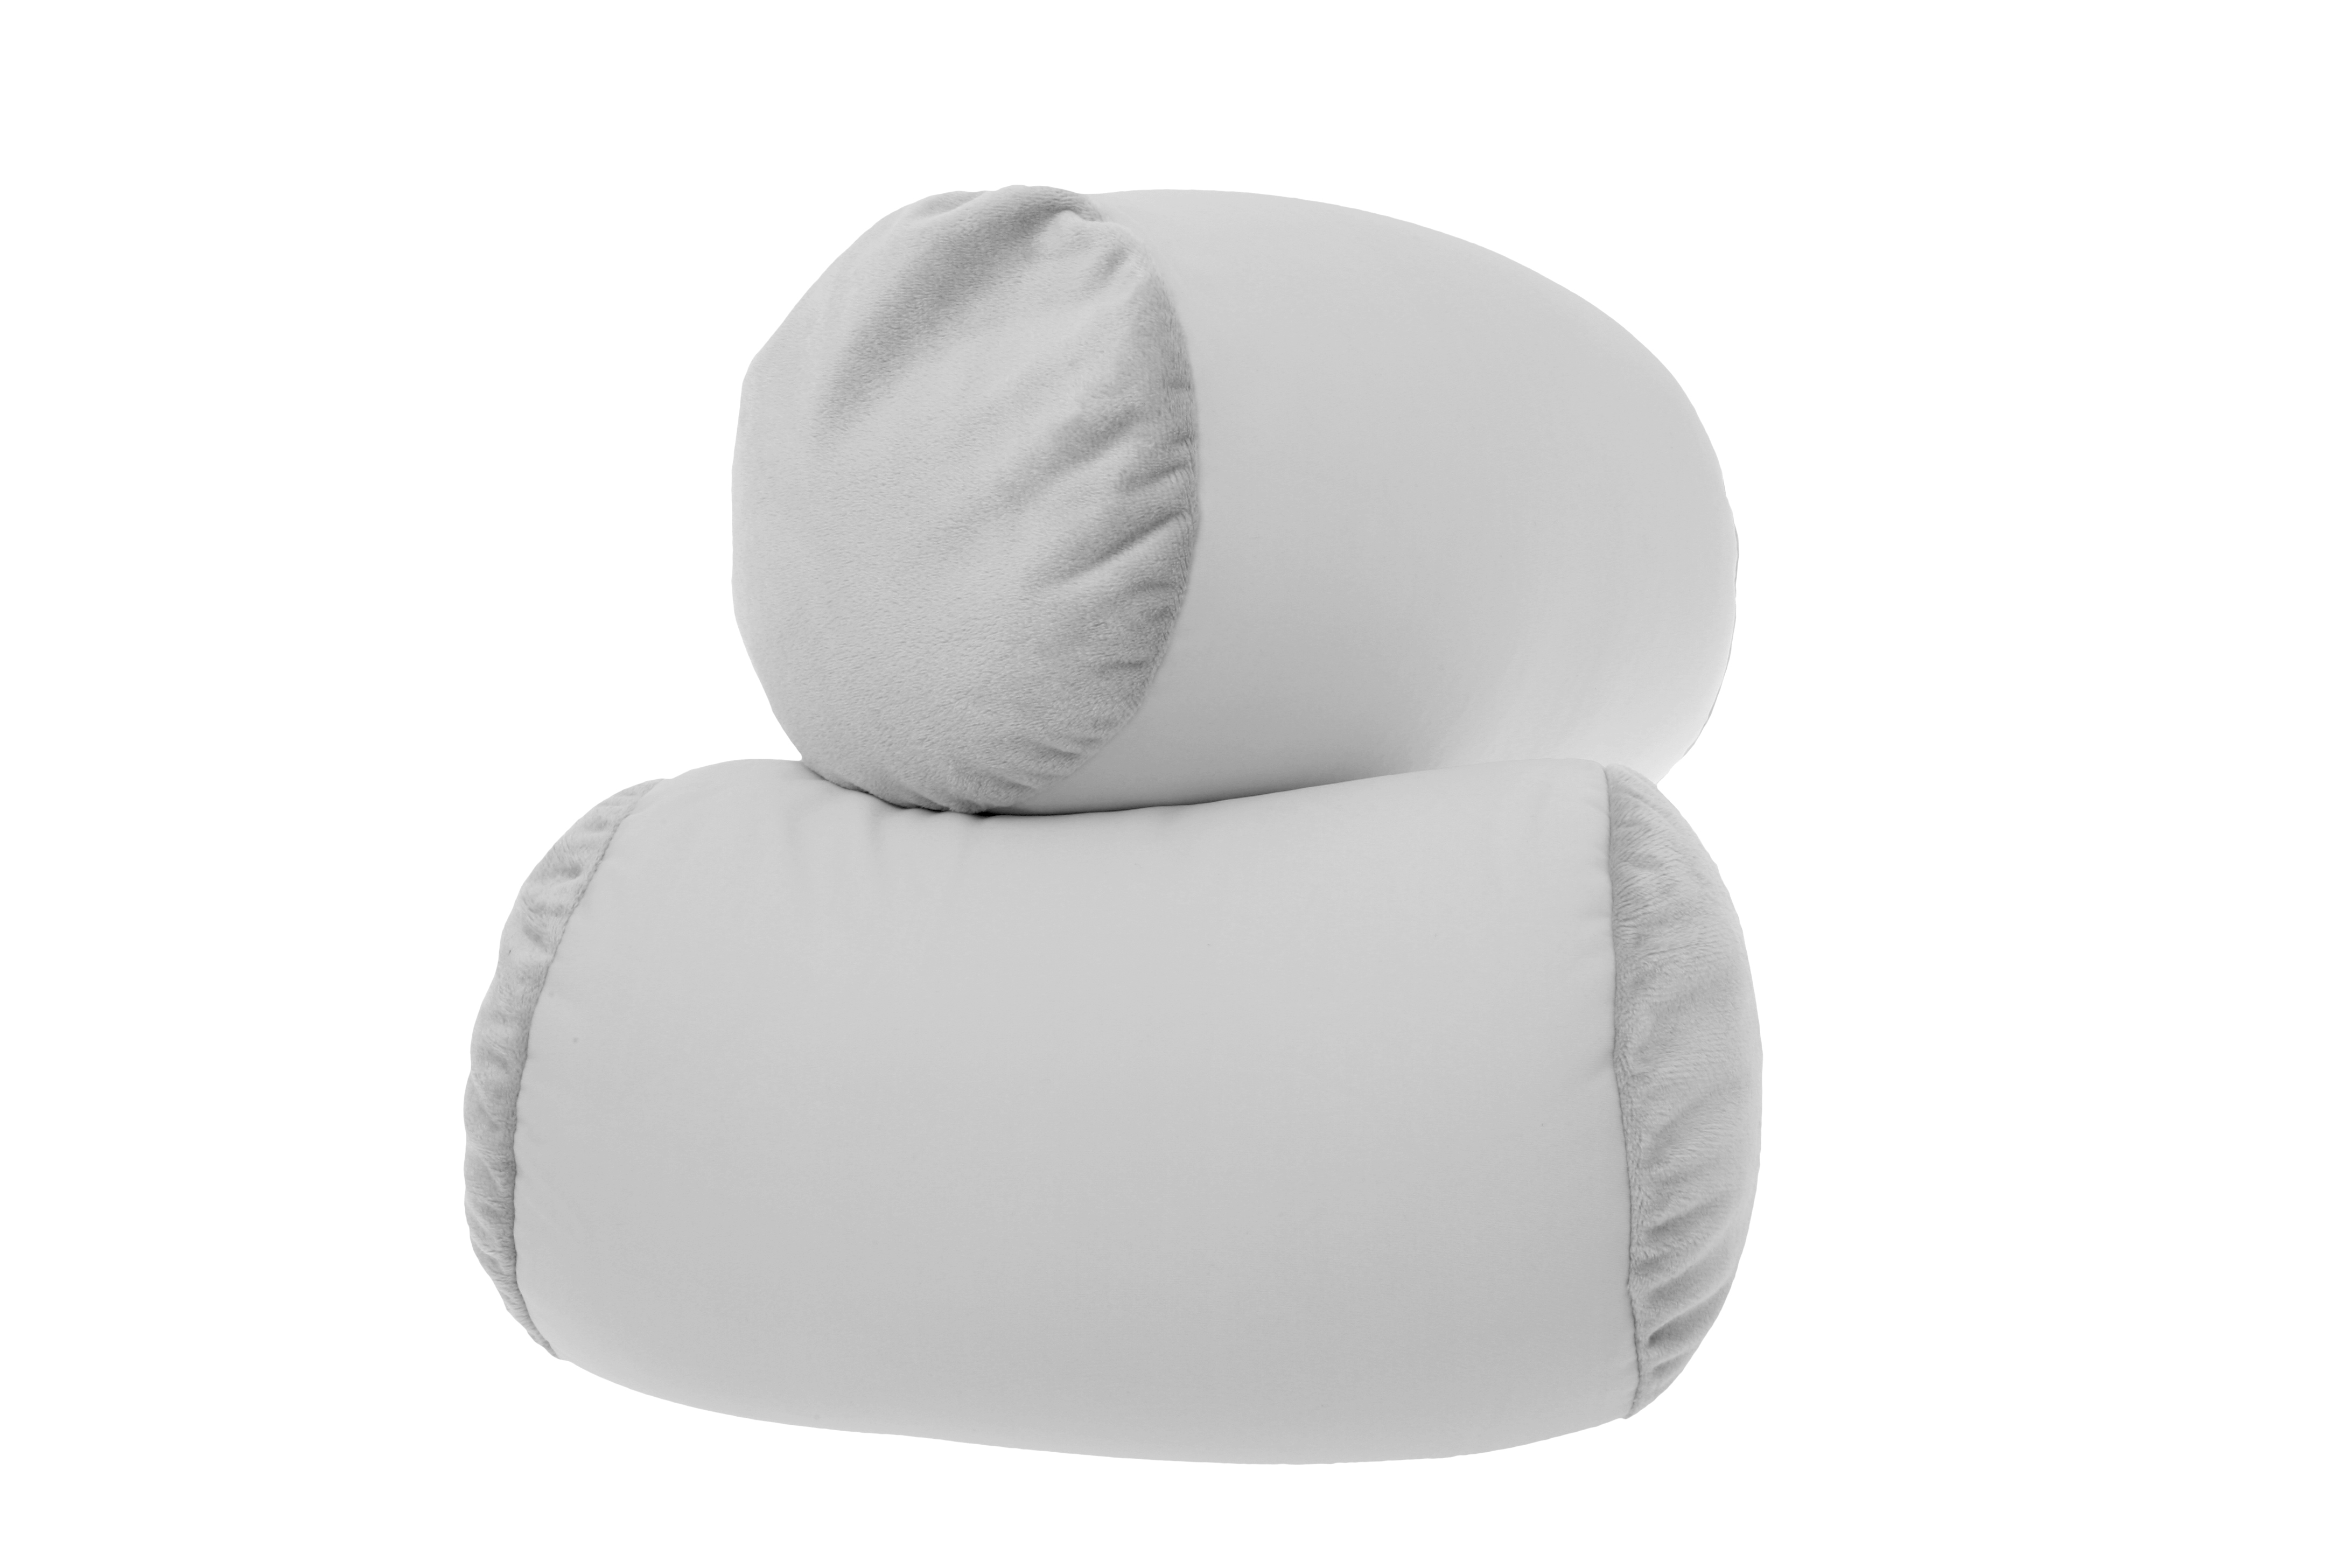 Phenomenal Details About Mooshi Squishy Microbead Pillow Fun Bubbly Colors Great For Teens Machost Co Dining Chair Design Ideas Machostcouk